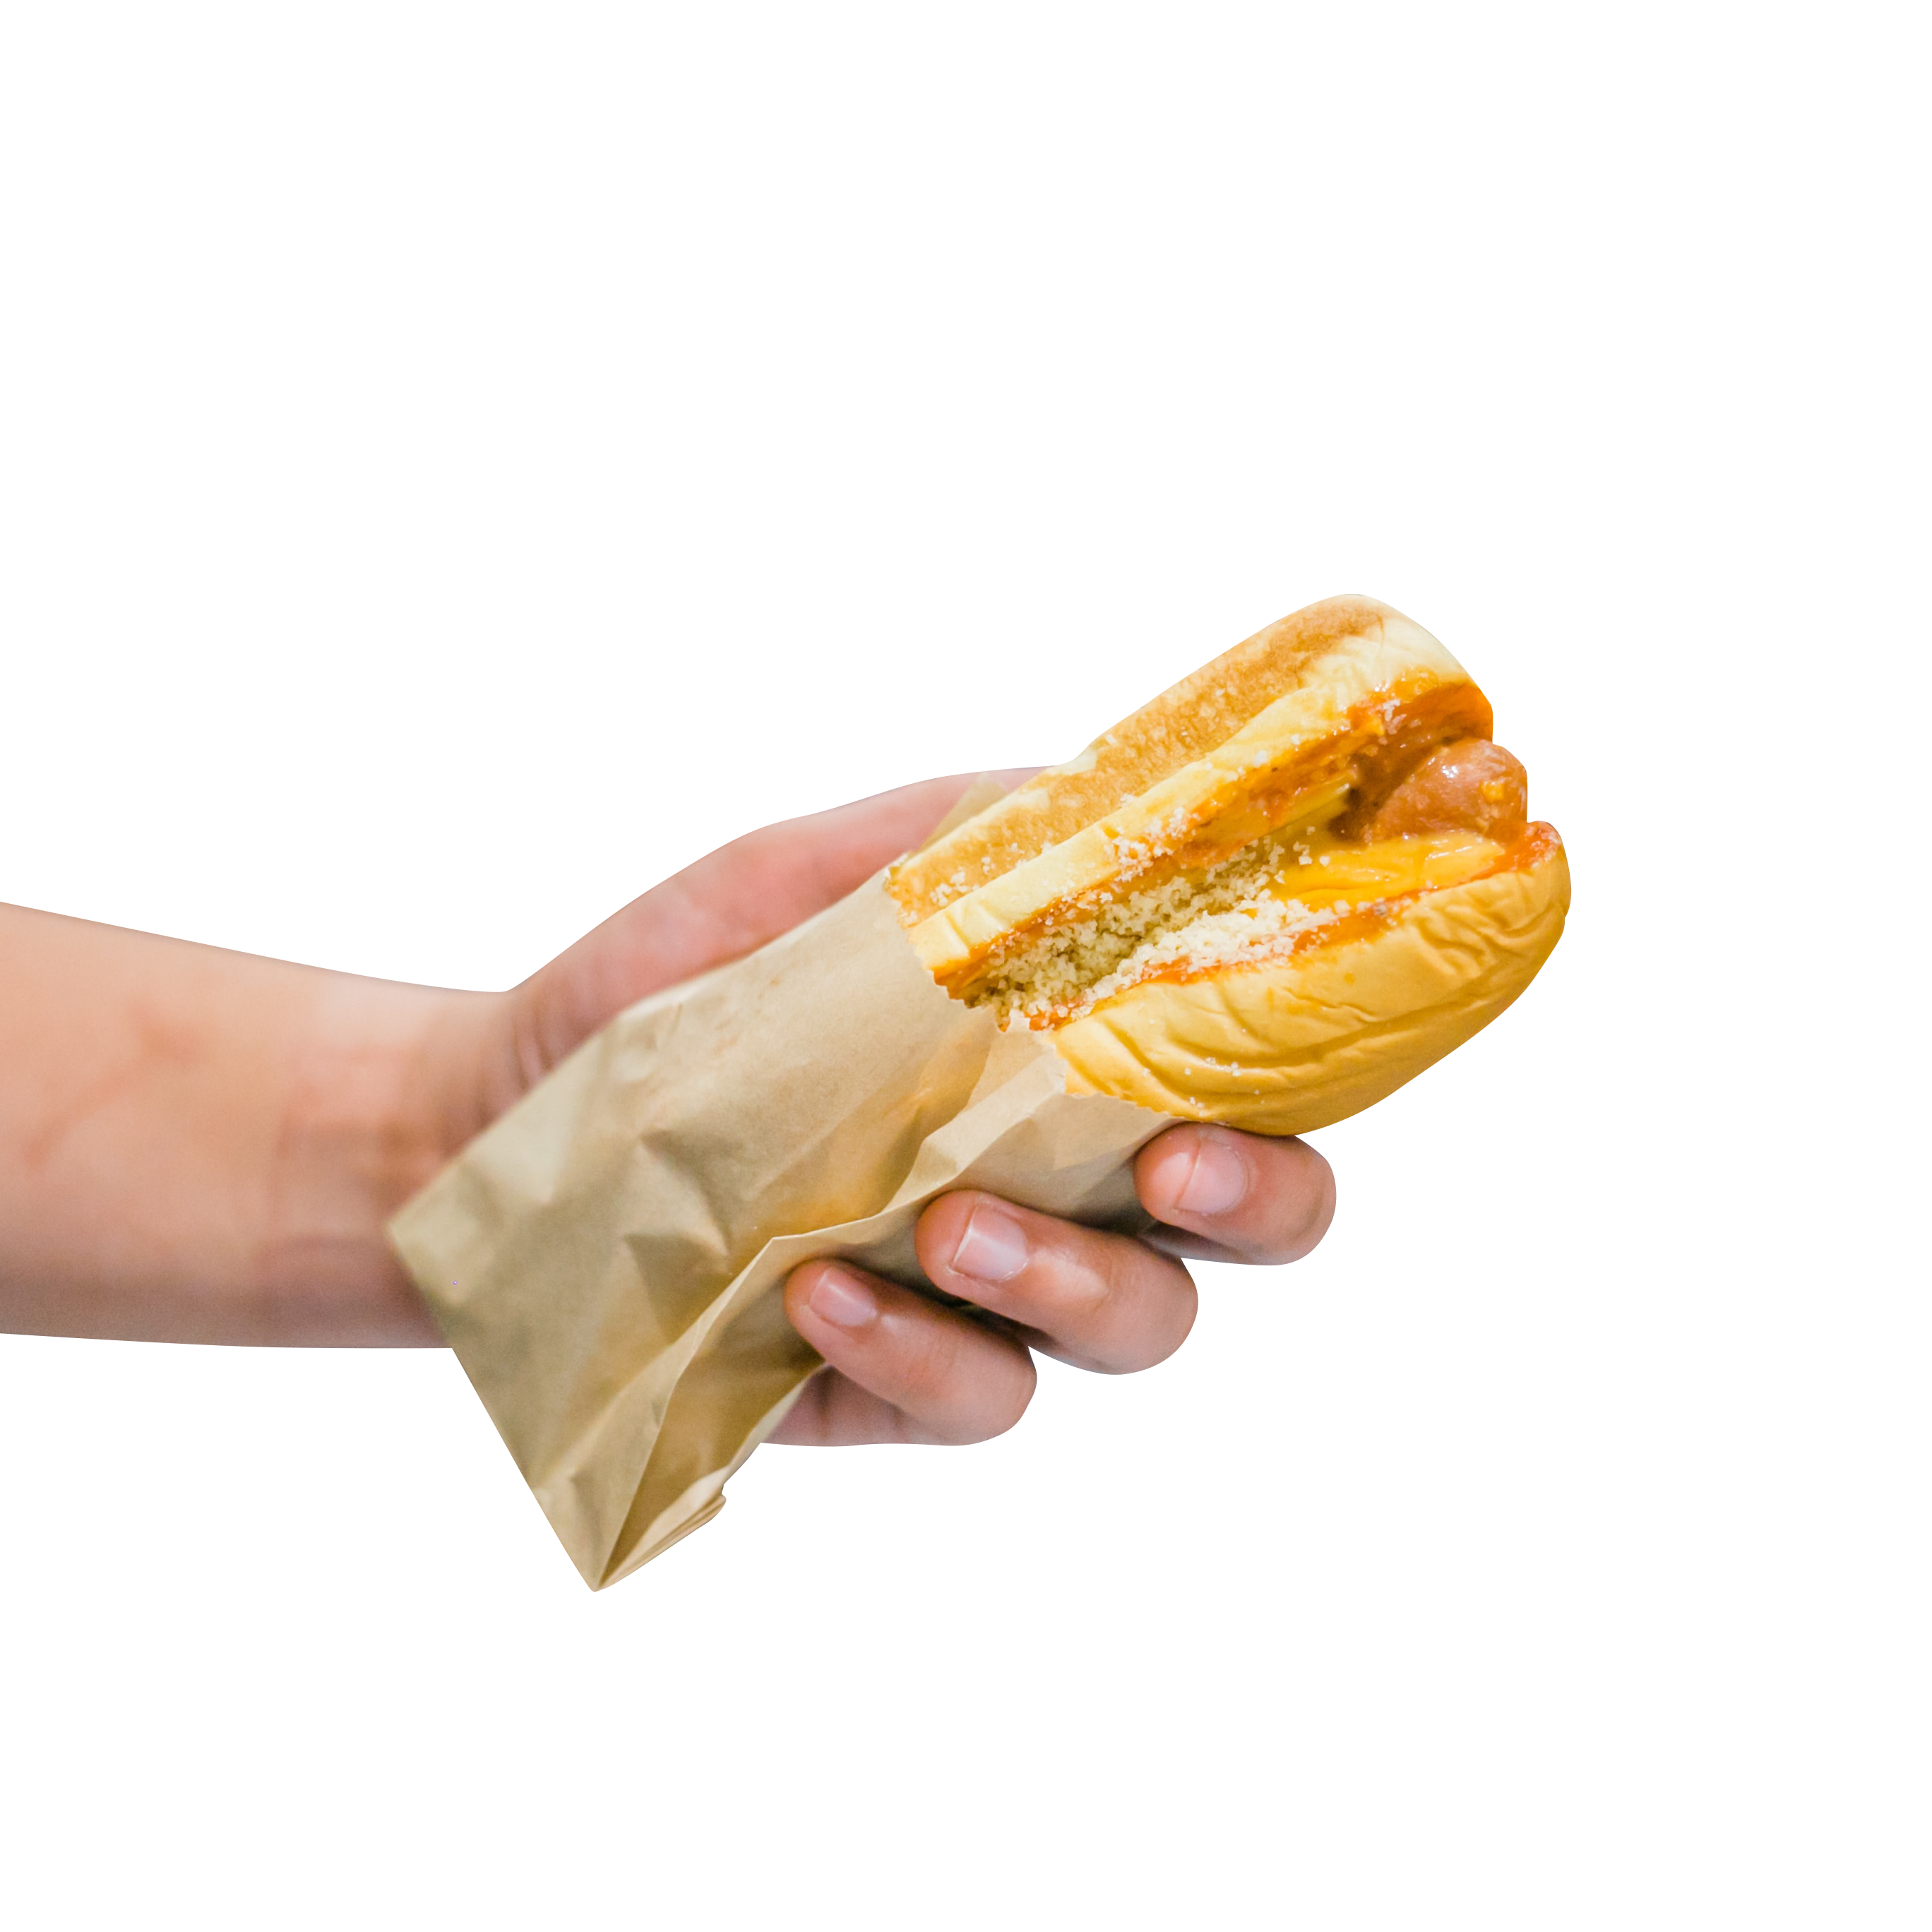 Hot Dog in Hand Transparent Background PNG